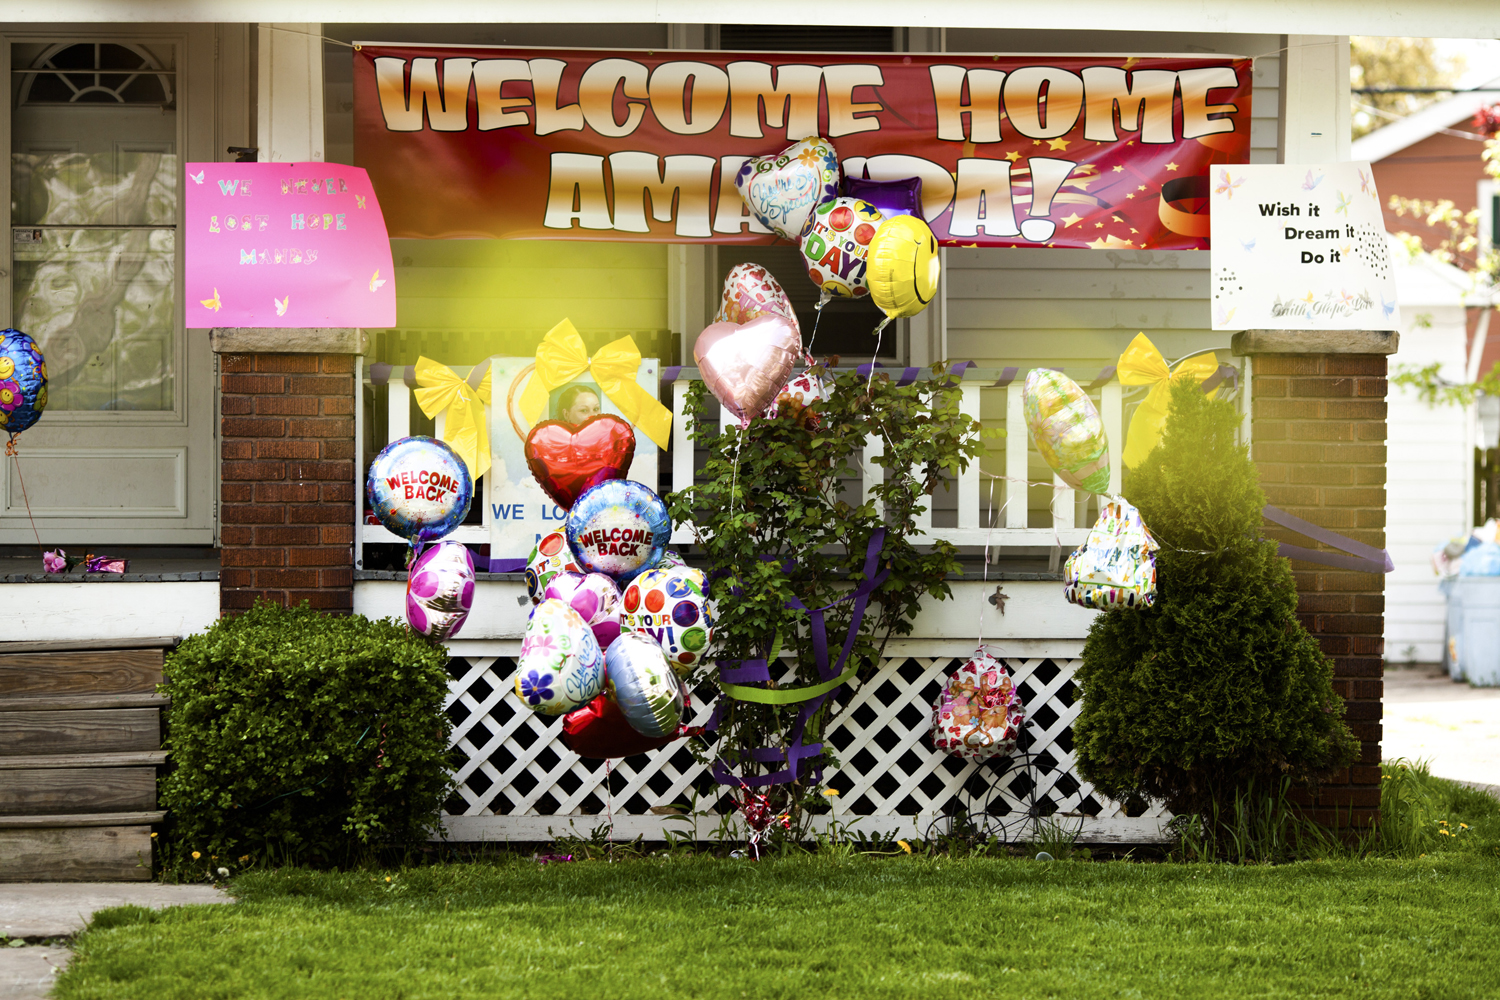 May 7, 2013. The home of Beth Serrano, the sister of Amanda Berry, one of three women who disappeared about a decade ago who were found alive in the home of Ariel Castro in Cleveland, Ohio.